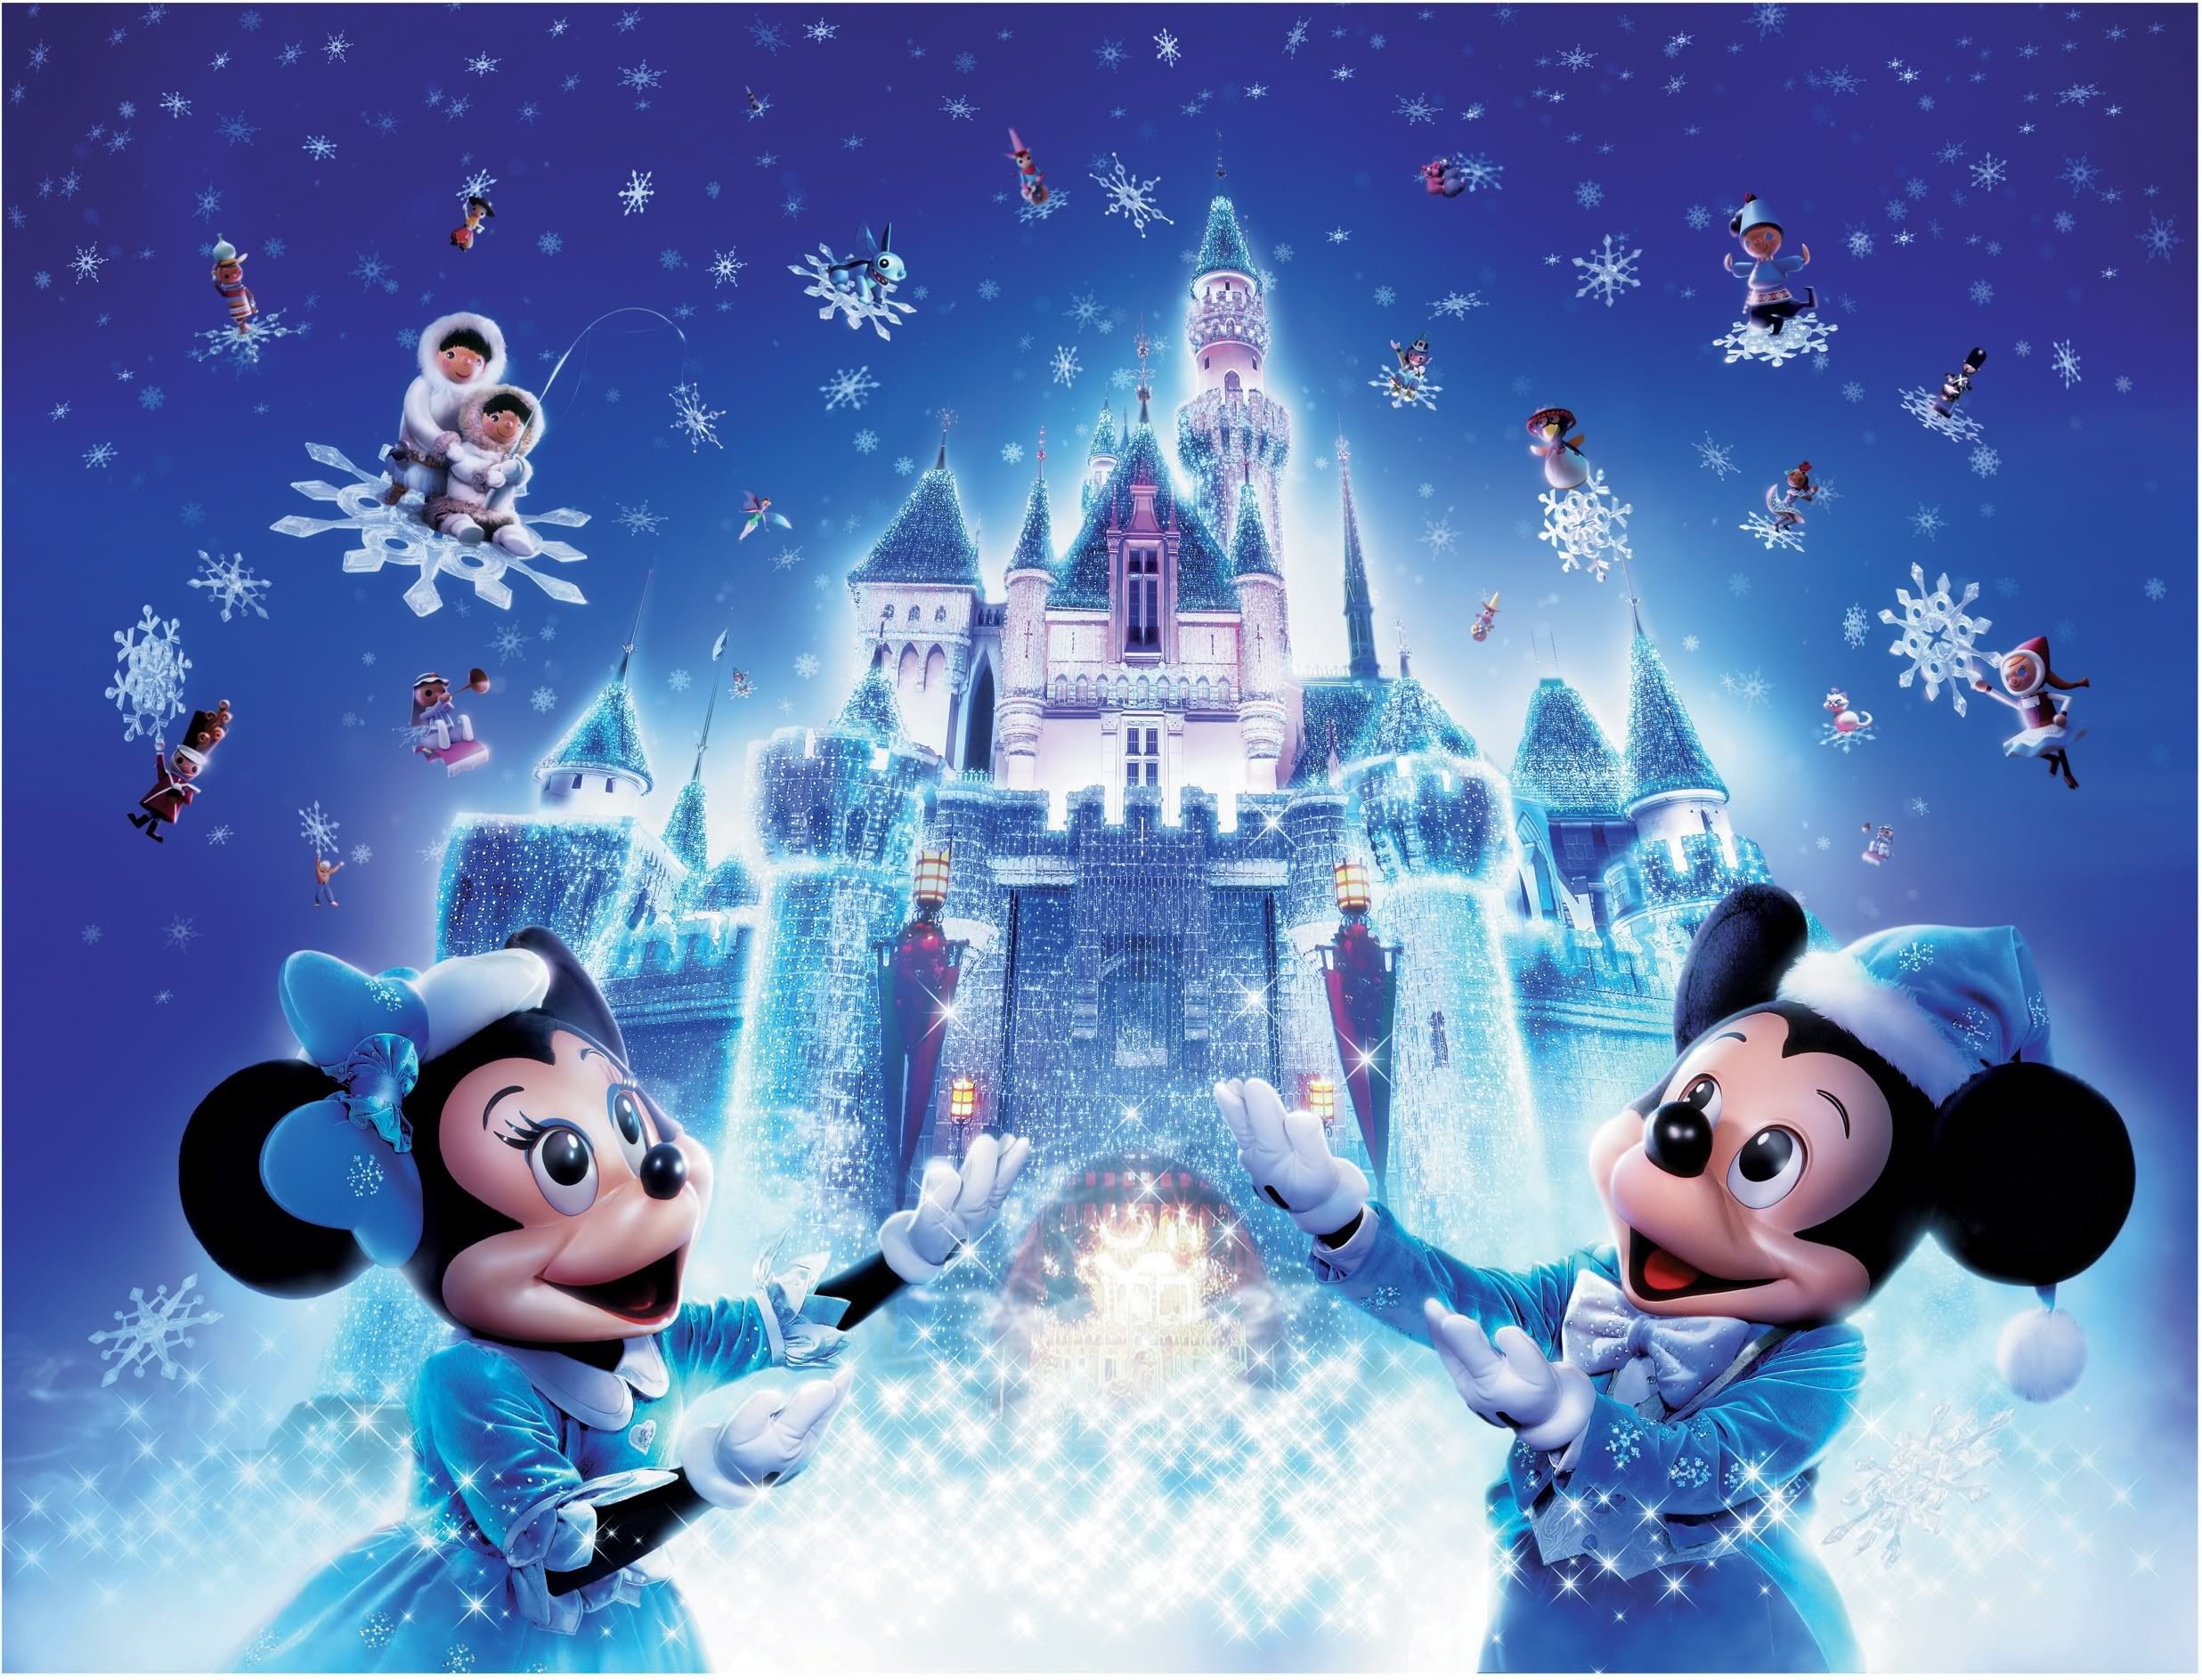 17 Best images about Winter on Pinterest | Funny disney cartoons ...